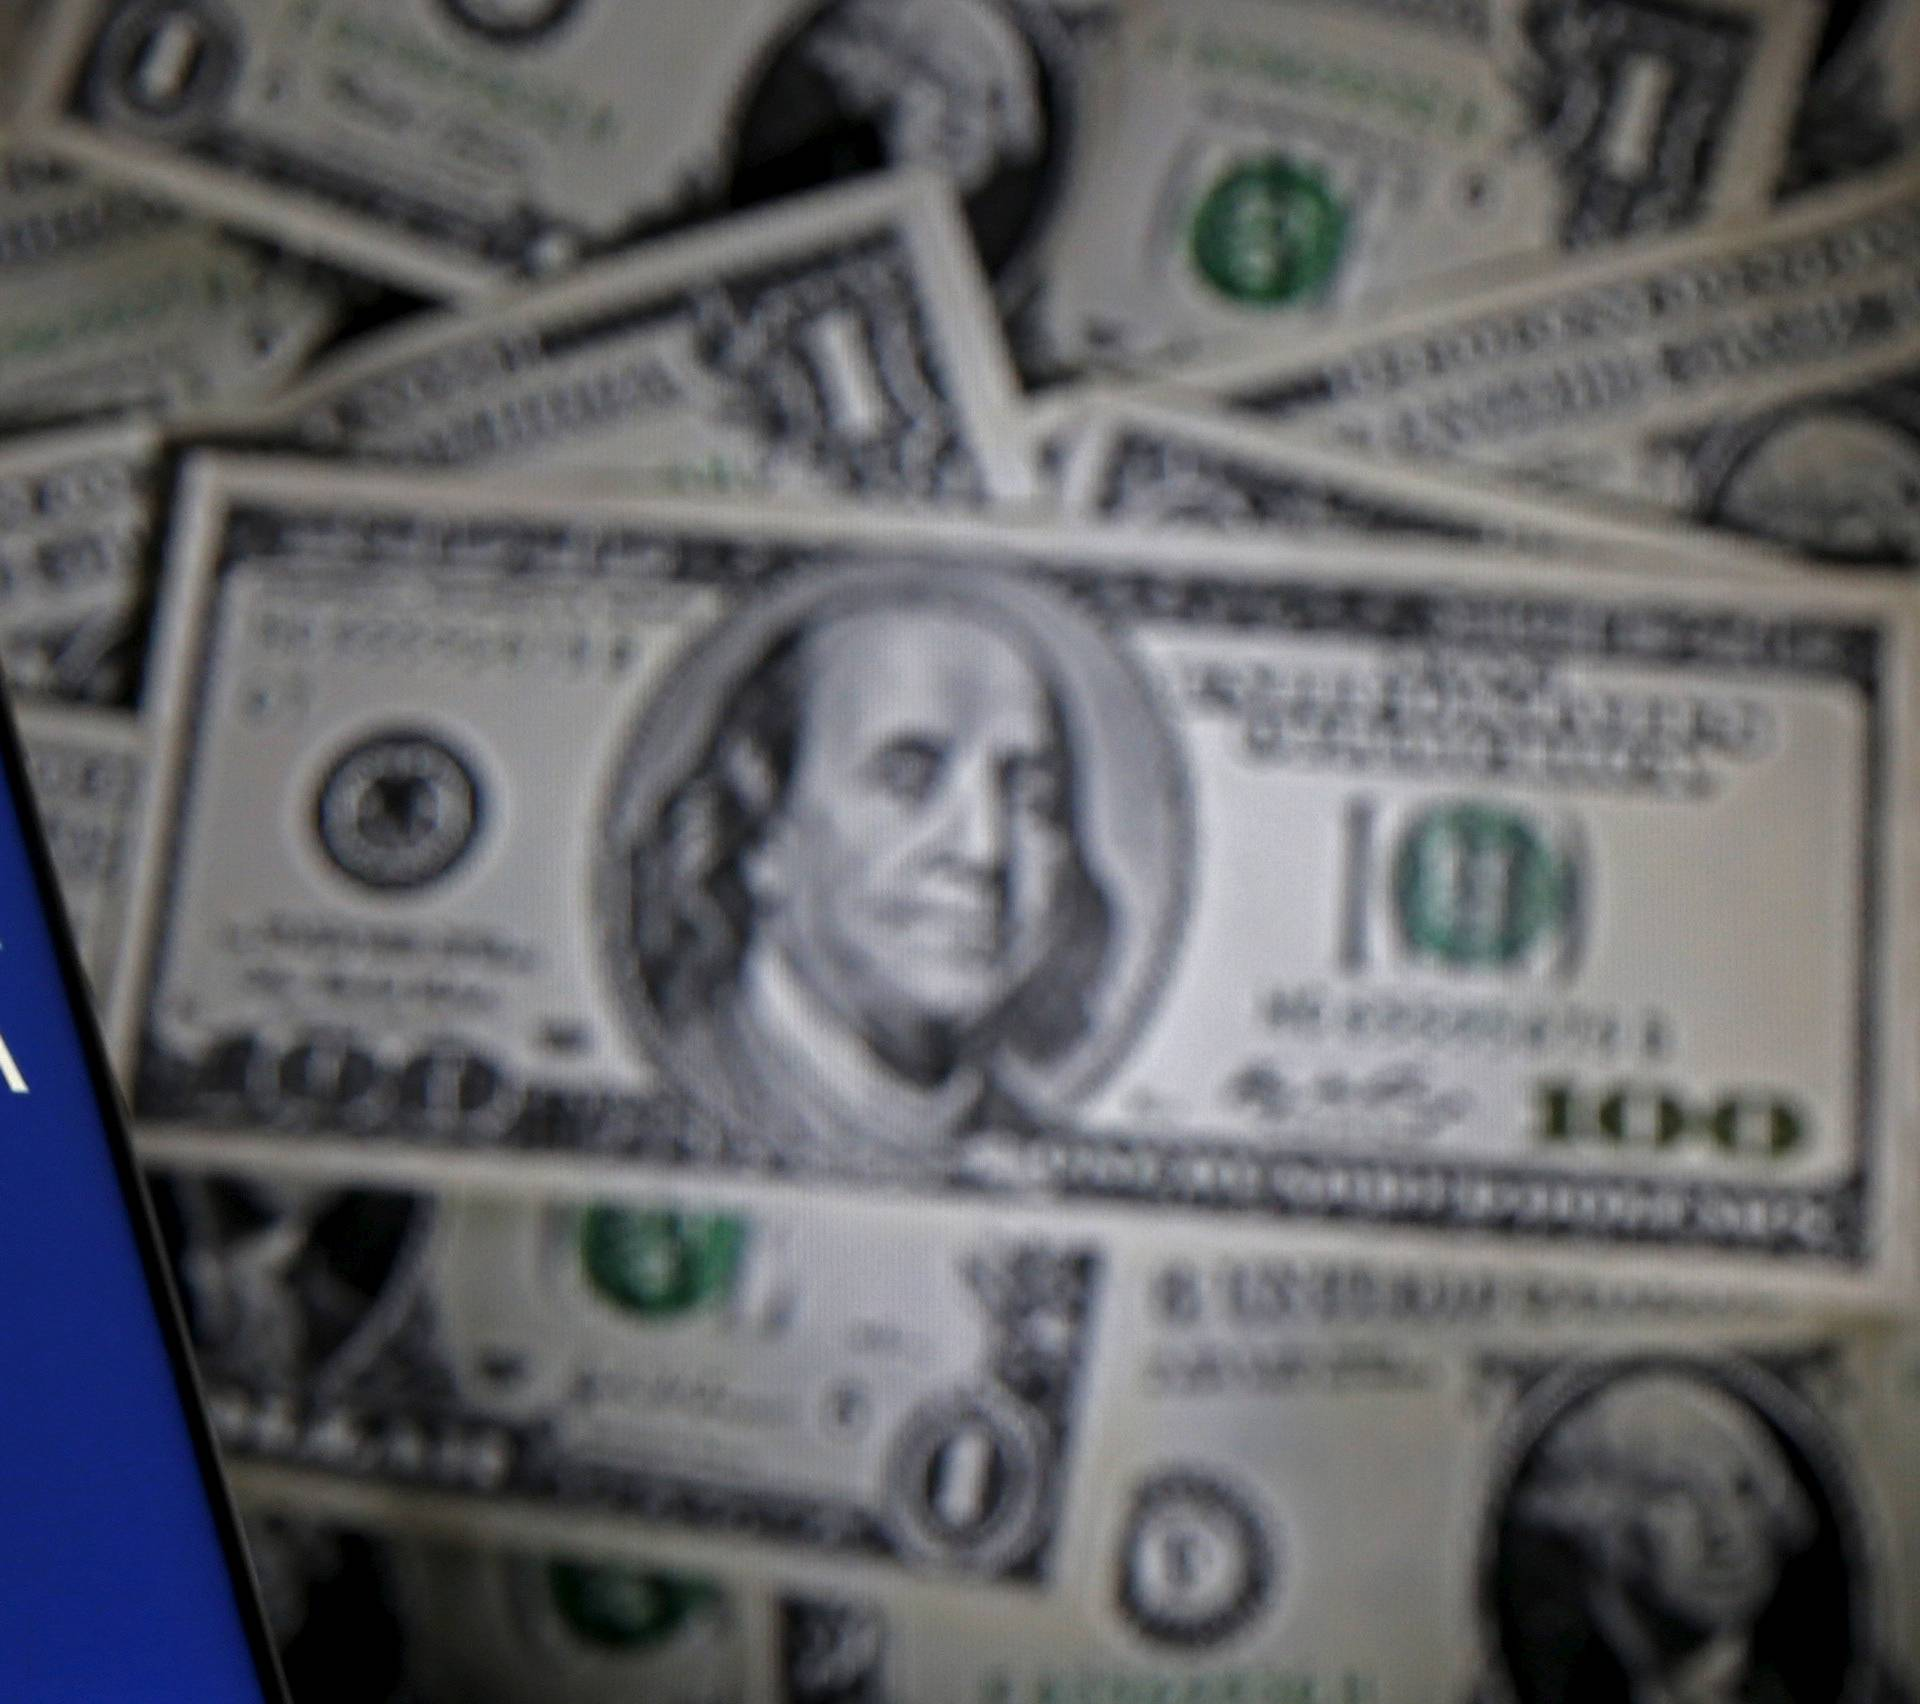 Picture illustration shows smartphone with Mossack Fonesca logo in front of a display of U.S. banknotes